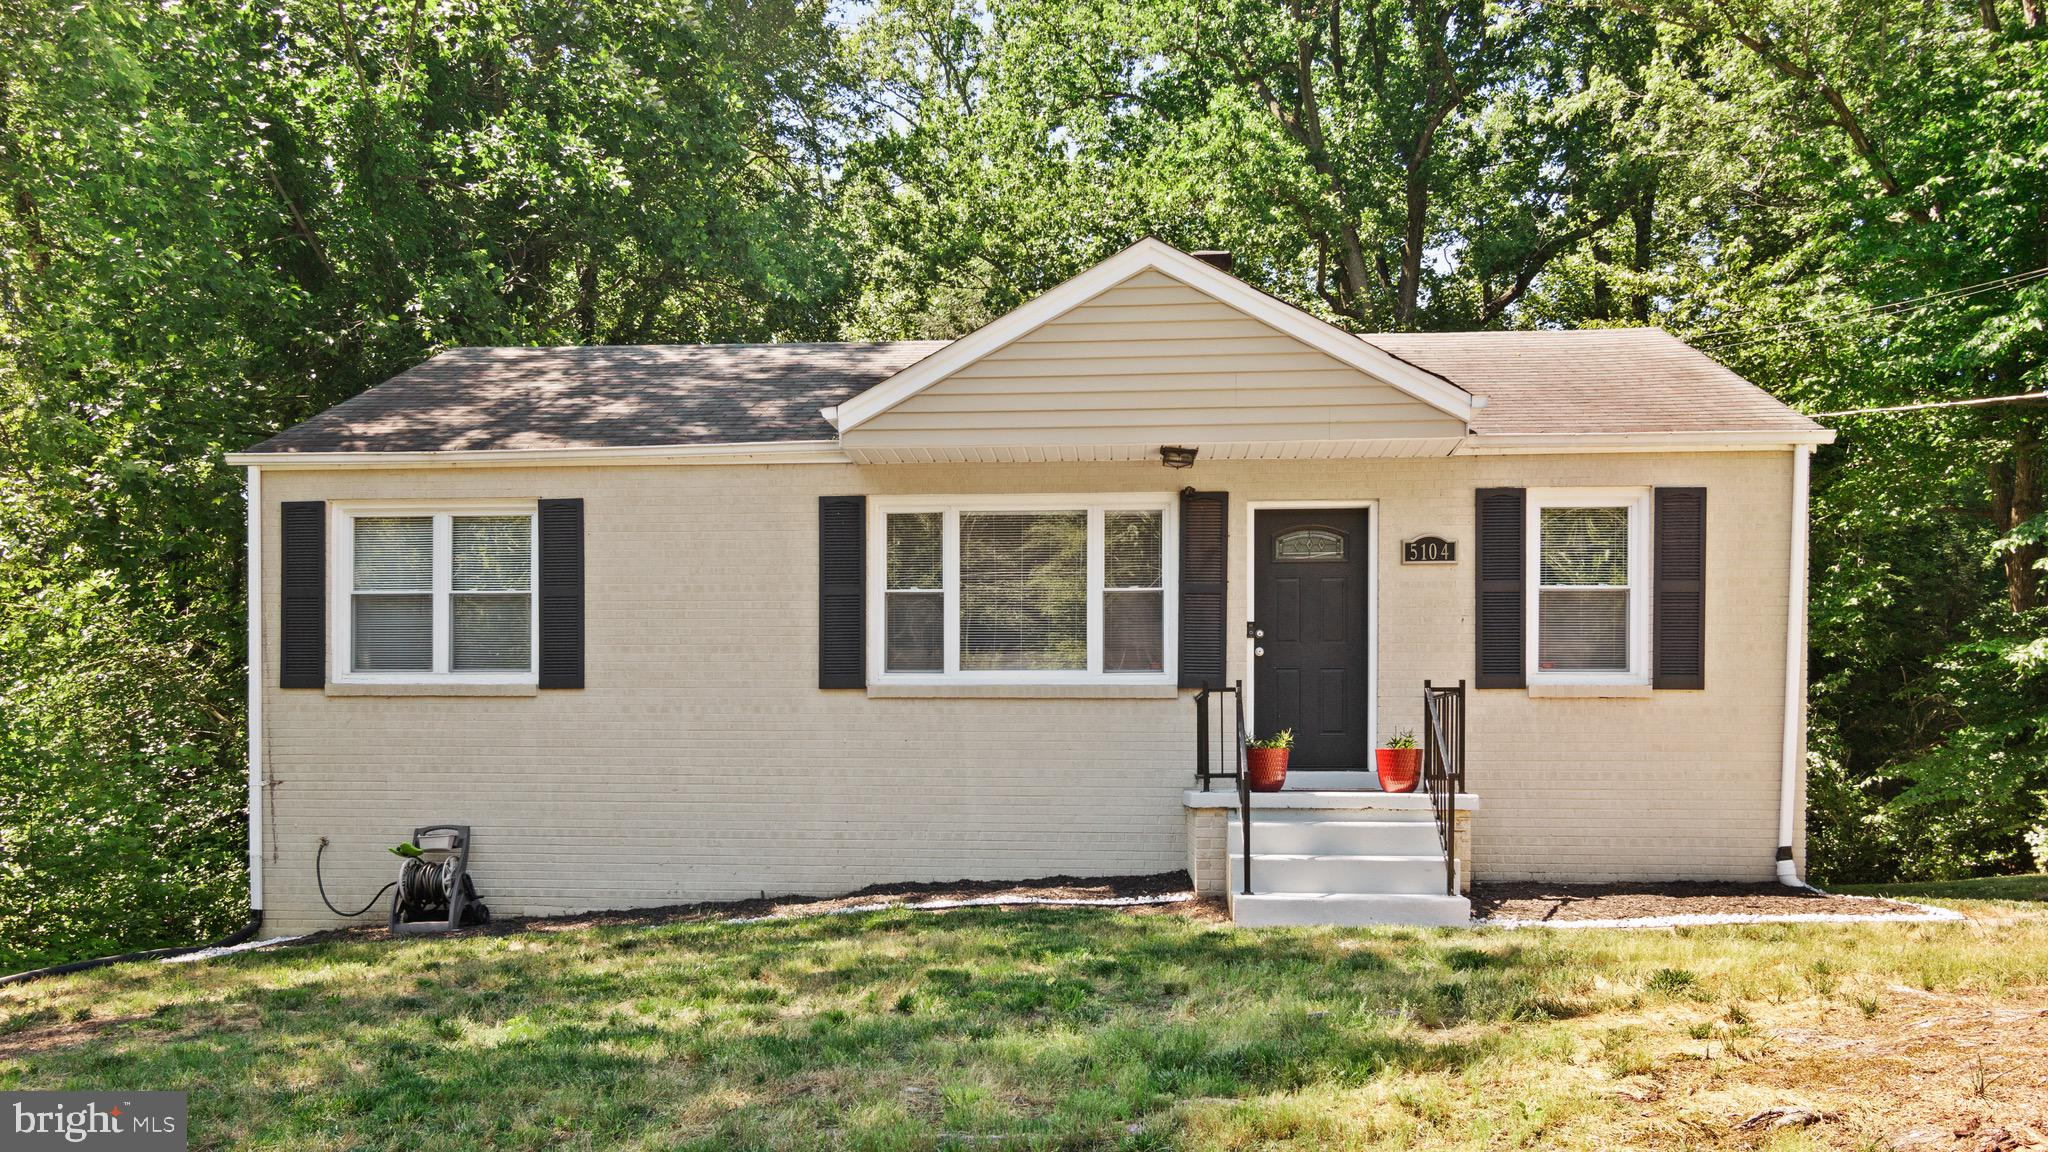 LOCATION LOCATION LOCATION!!! Conveniently located to branch ave and 495 .   Beautiful private yard